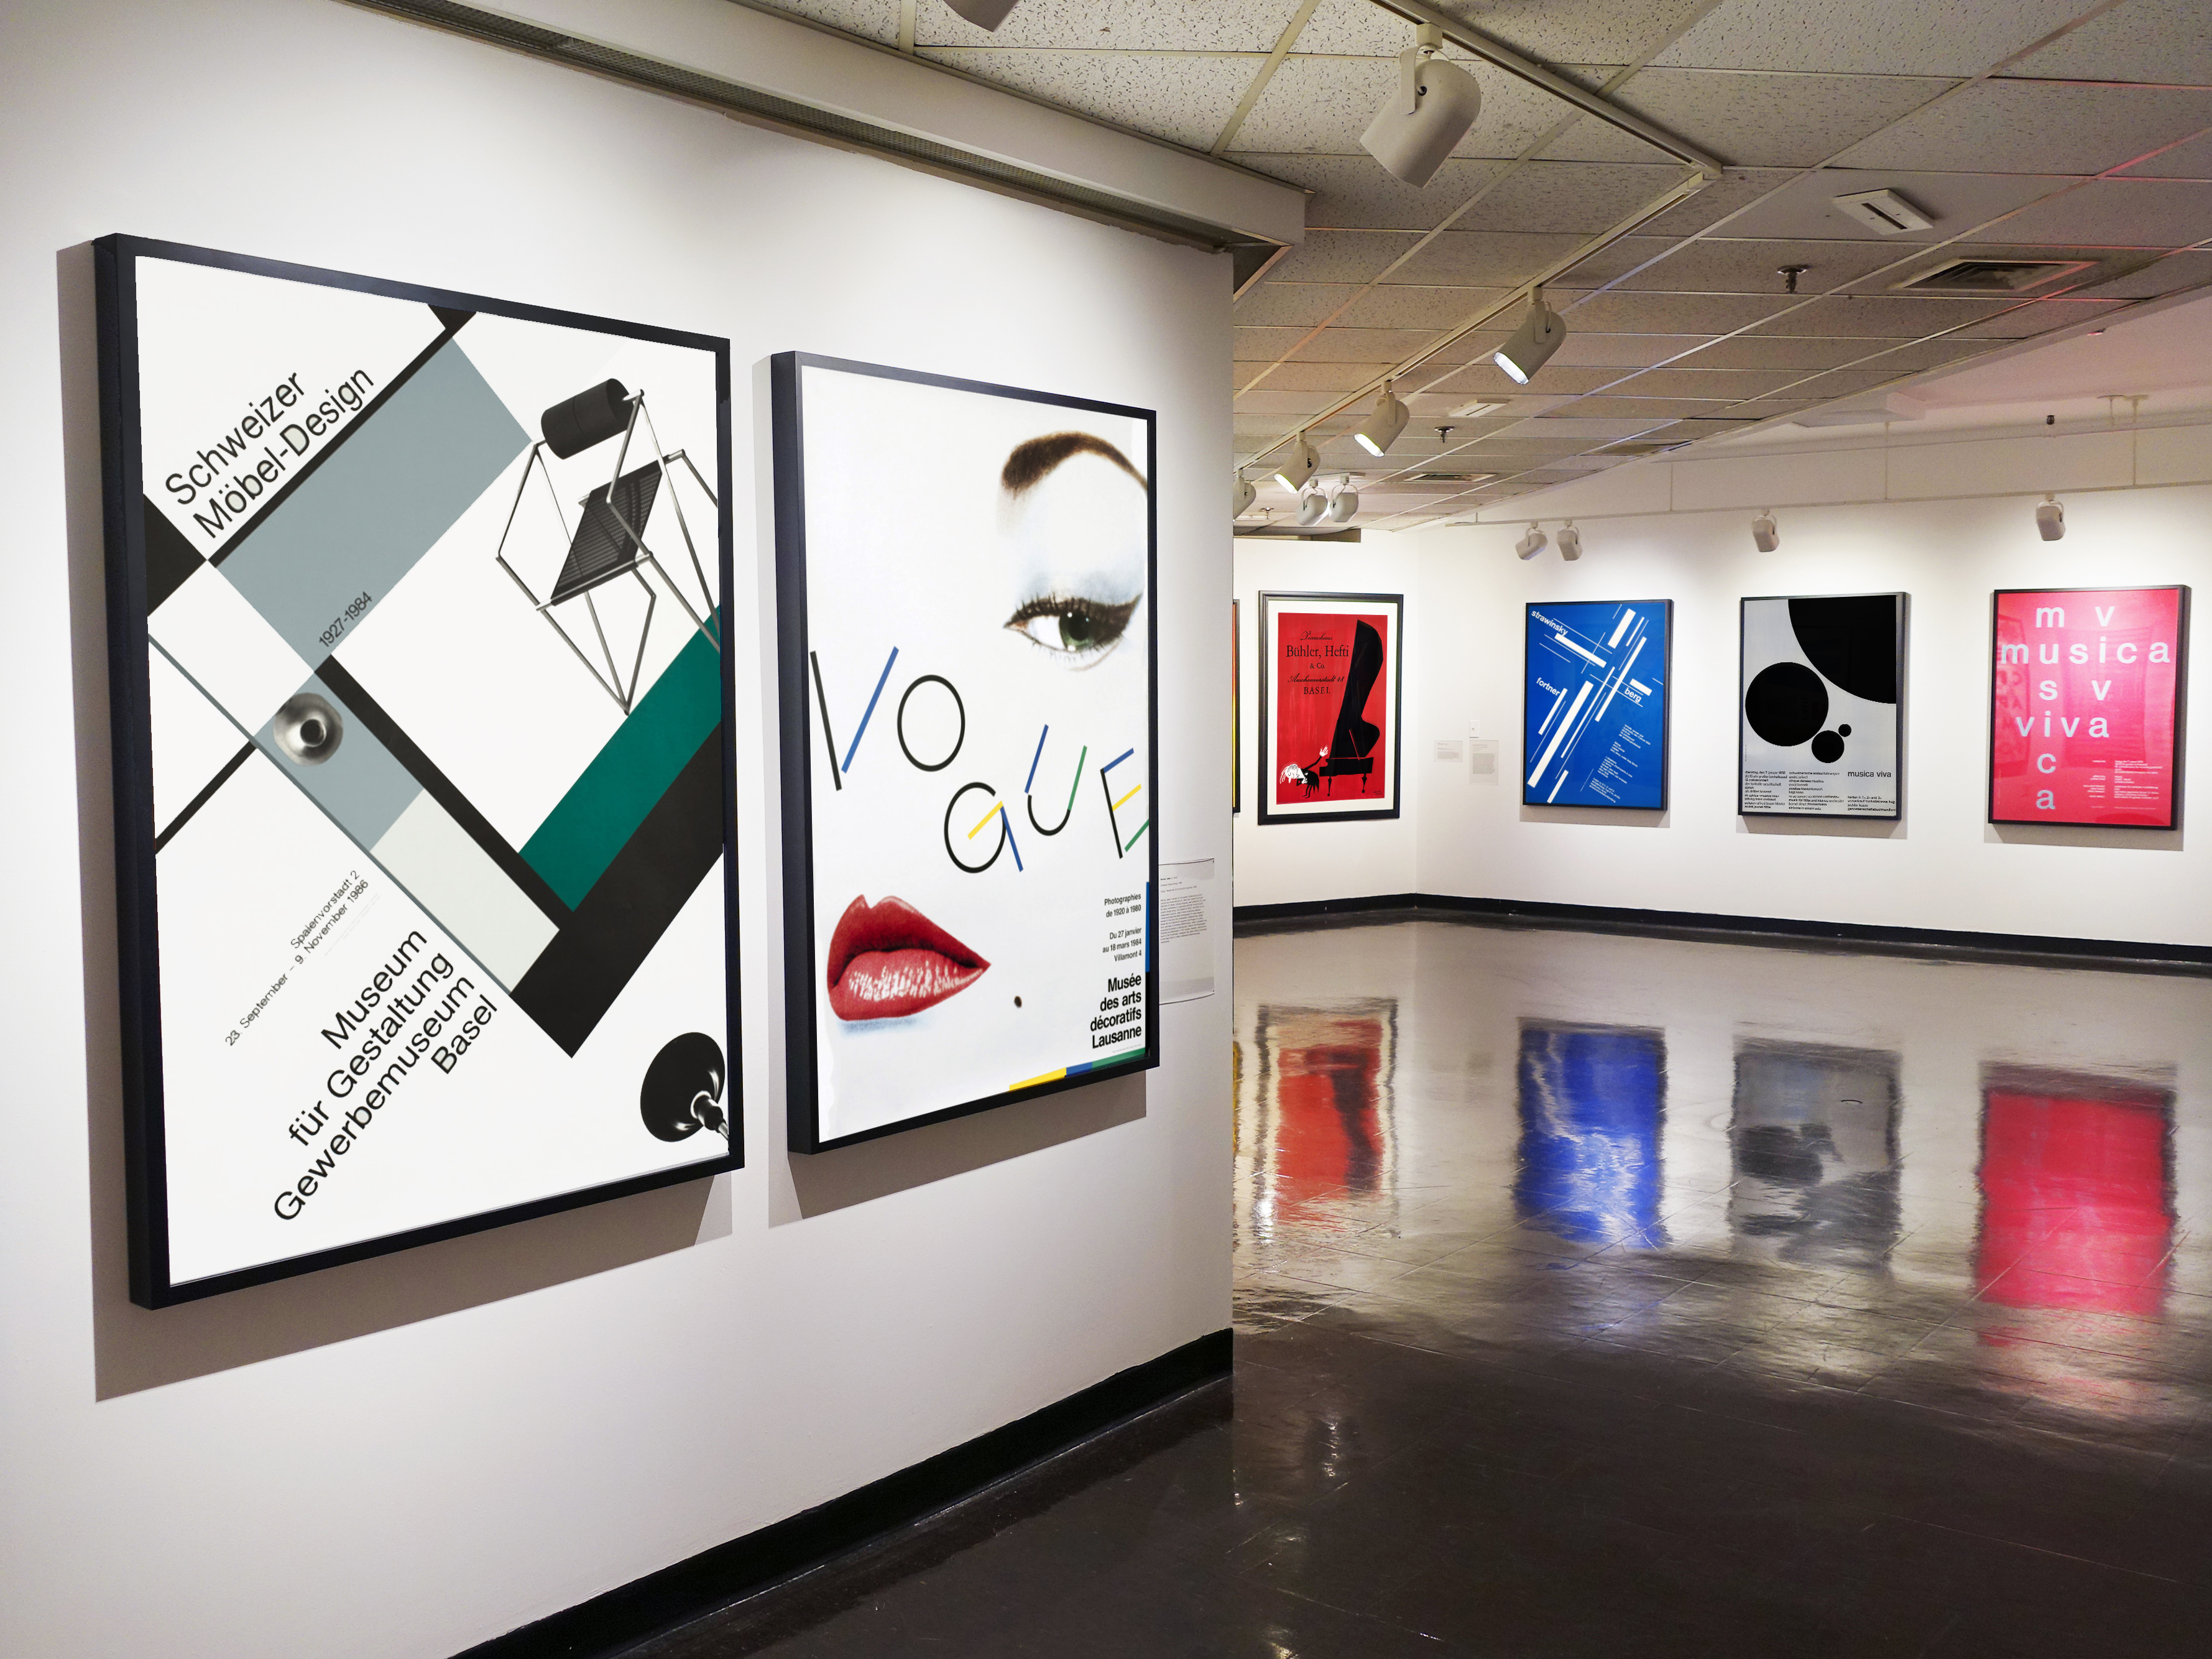 wide view of gallery with 6 posters on the walls; black, white, pink, blue, red